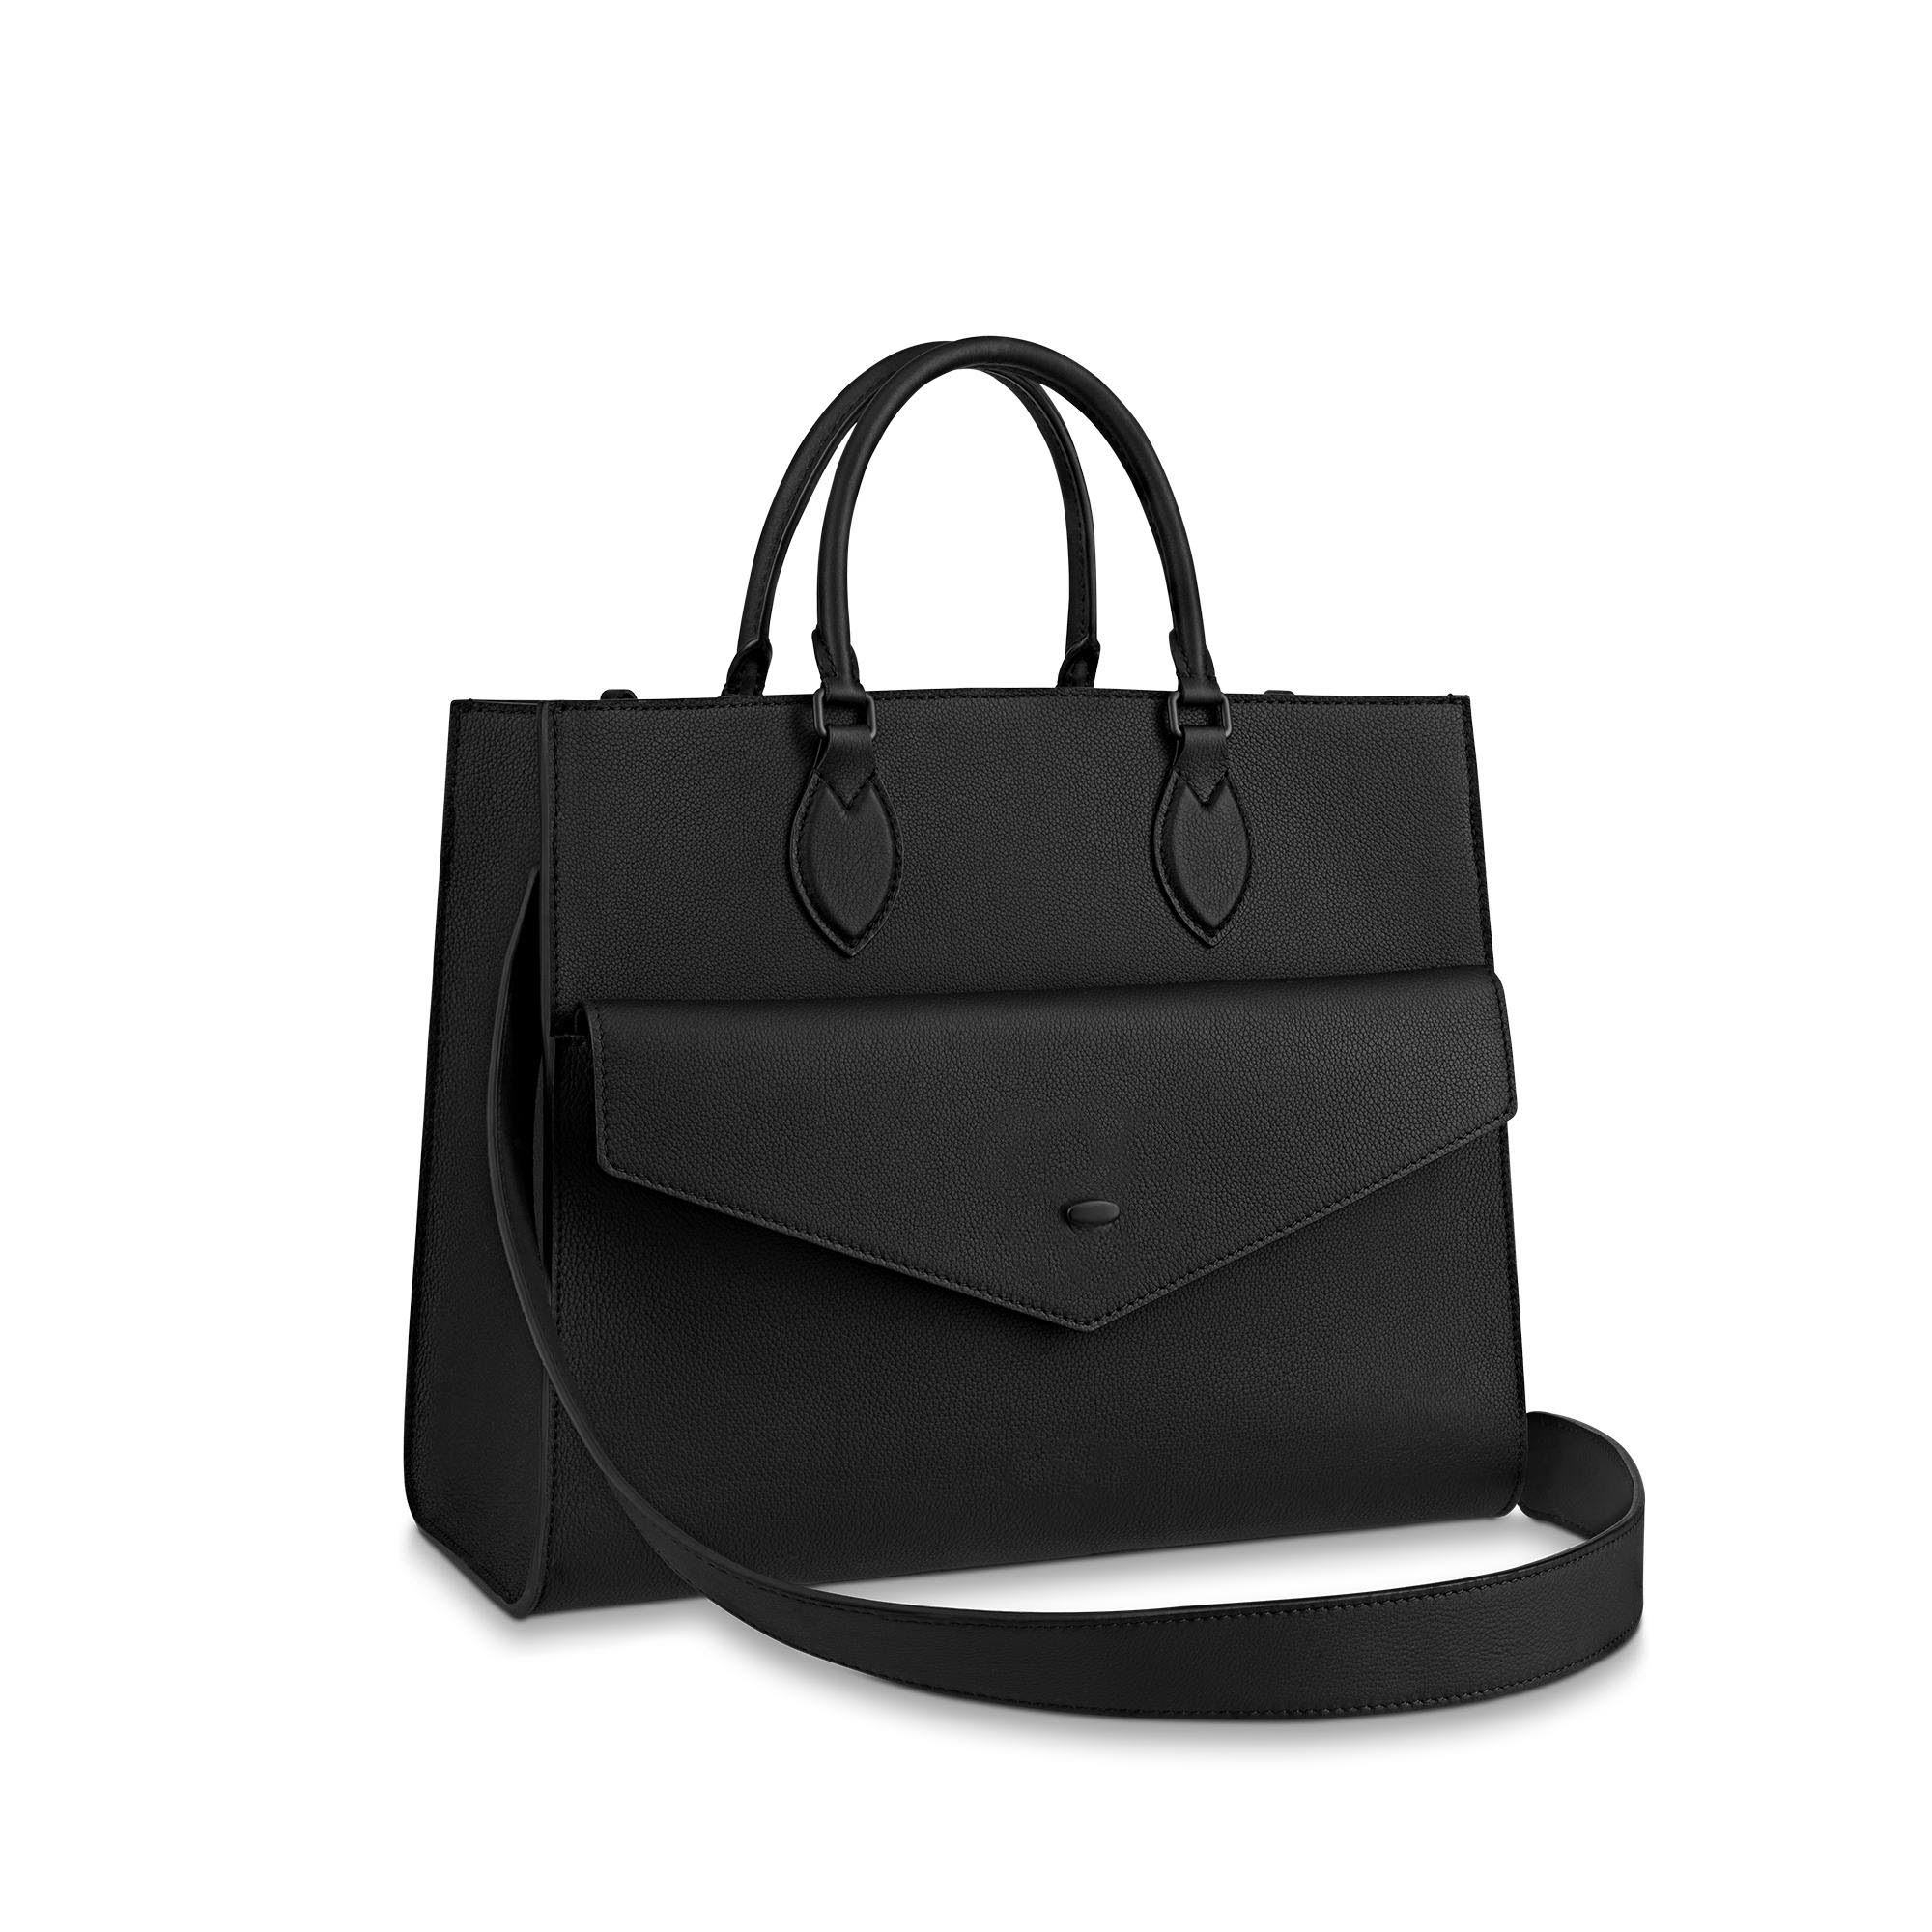 M55846 Lockme Tote MM